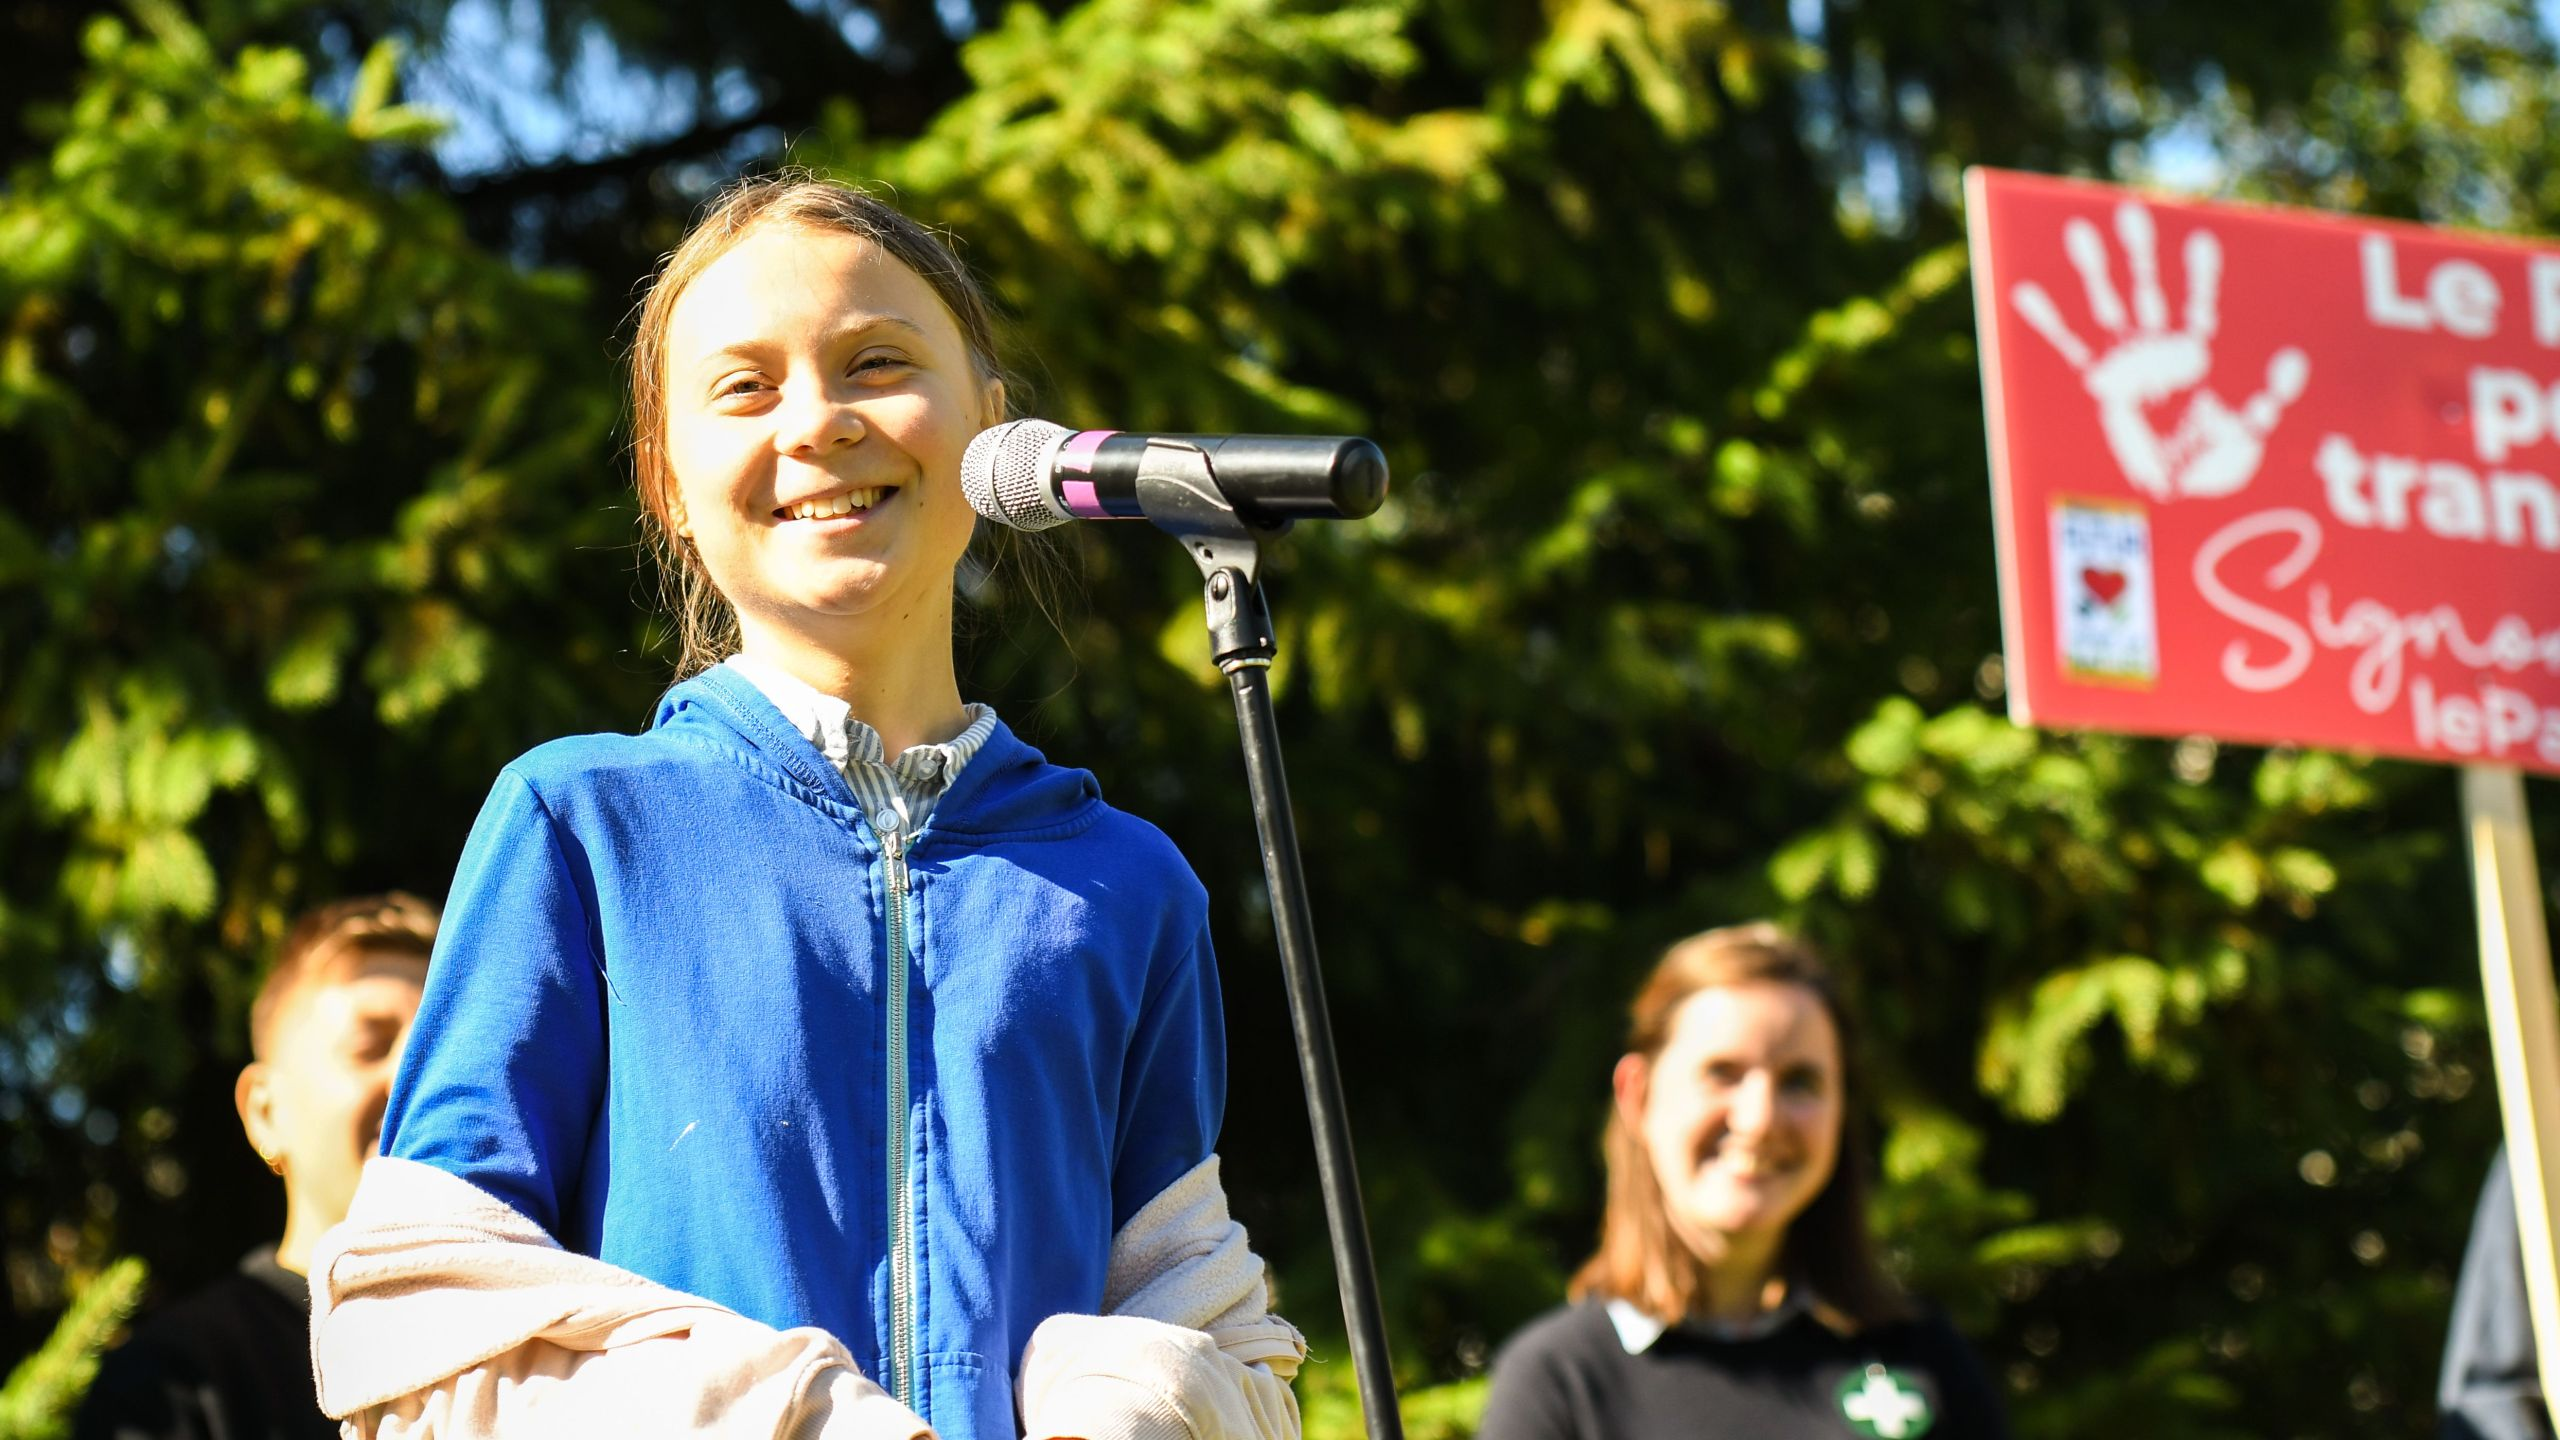 Swedish climate activist Greta Thunberg speaks during a press conference before the march for climate in Montreal, Canada, on Sept. 27 2019. (Credit: MARTIN OUELLET-DIOTTE/AFP/Getty Images)